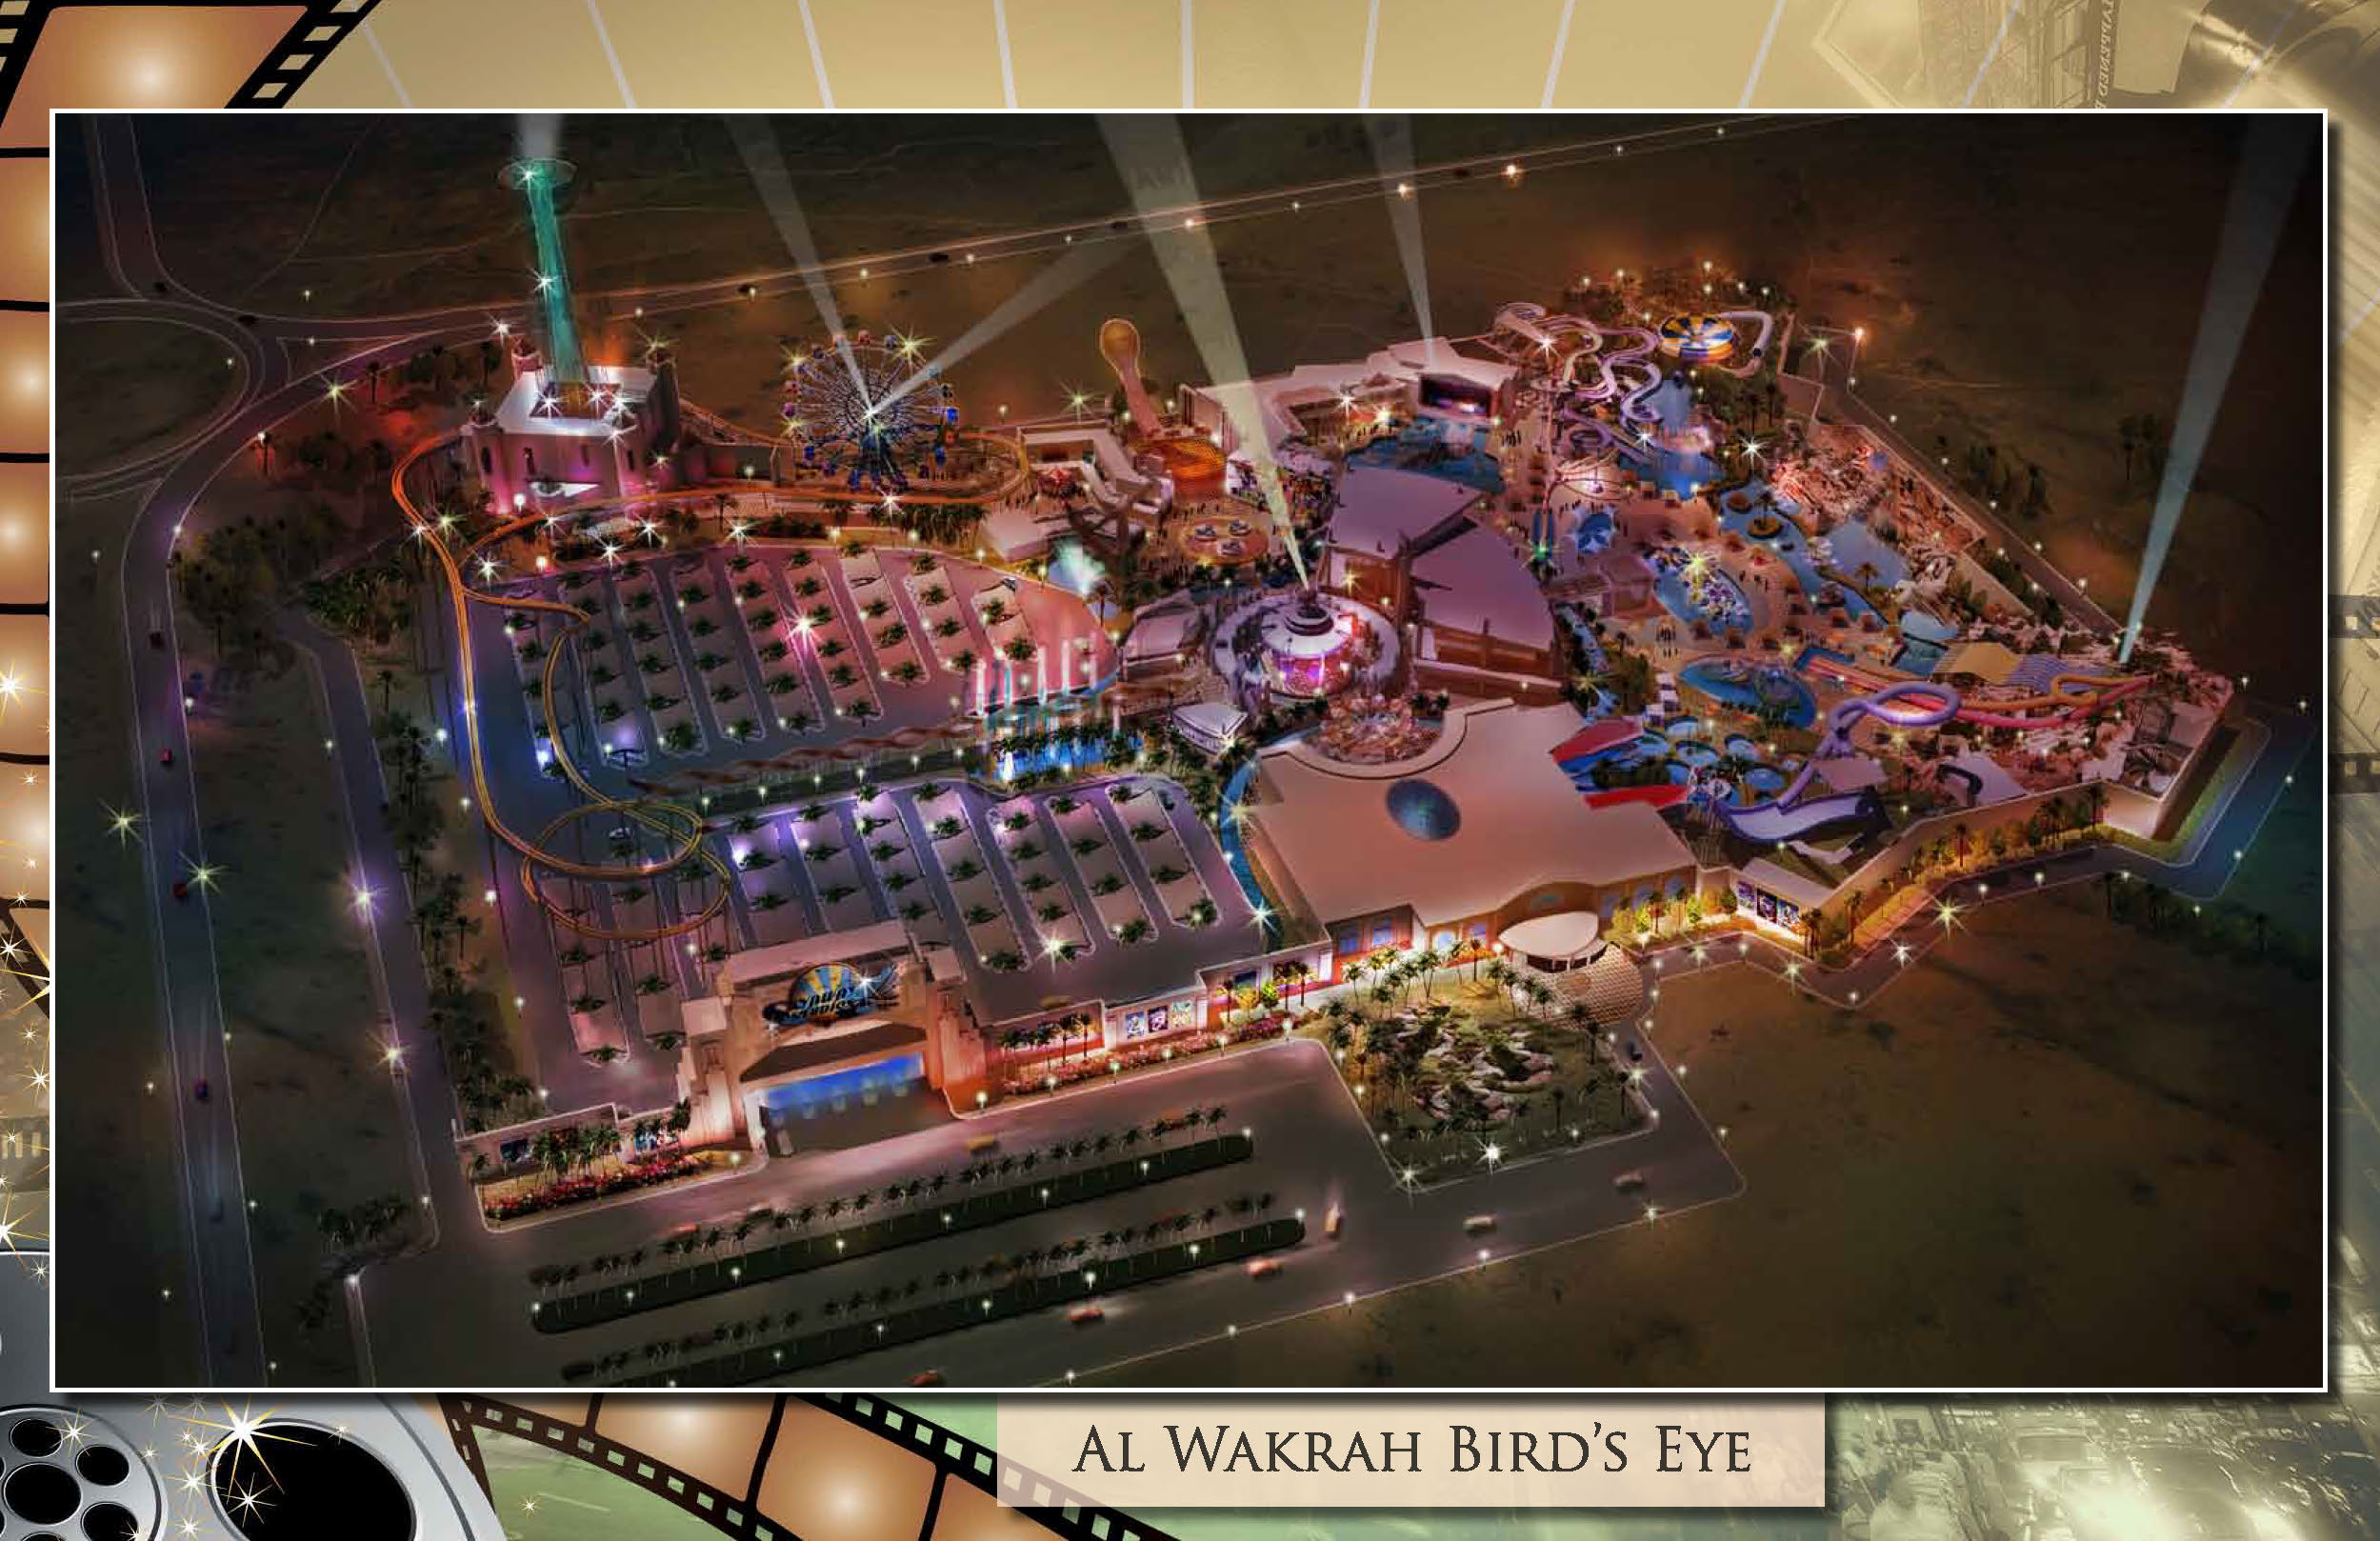 Skyaway Studios Themed Waterpark, Doha, Qatar. Master Planned in collaboration with Nextep Design, Inc.